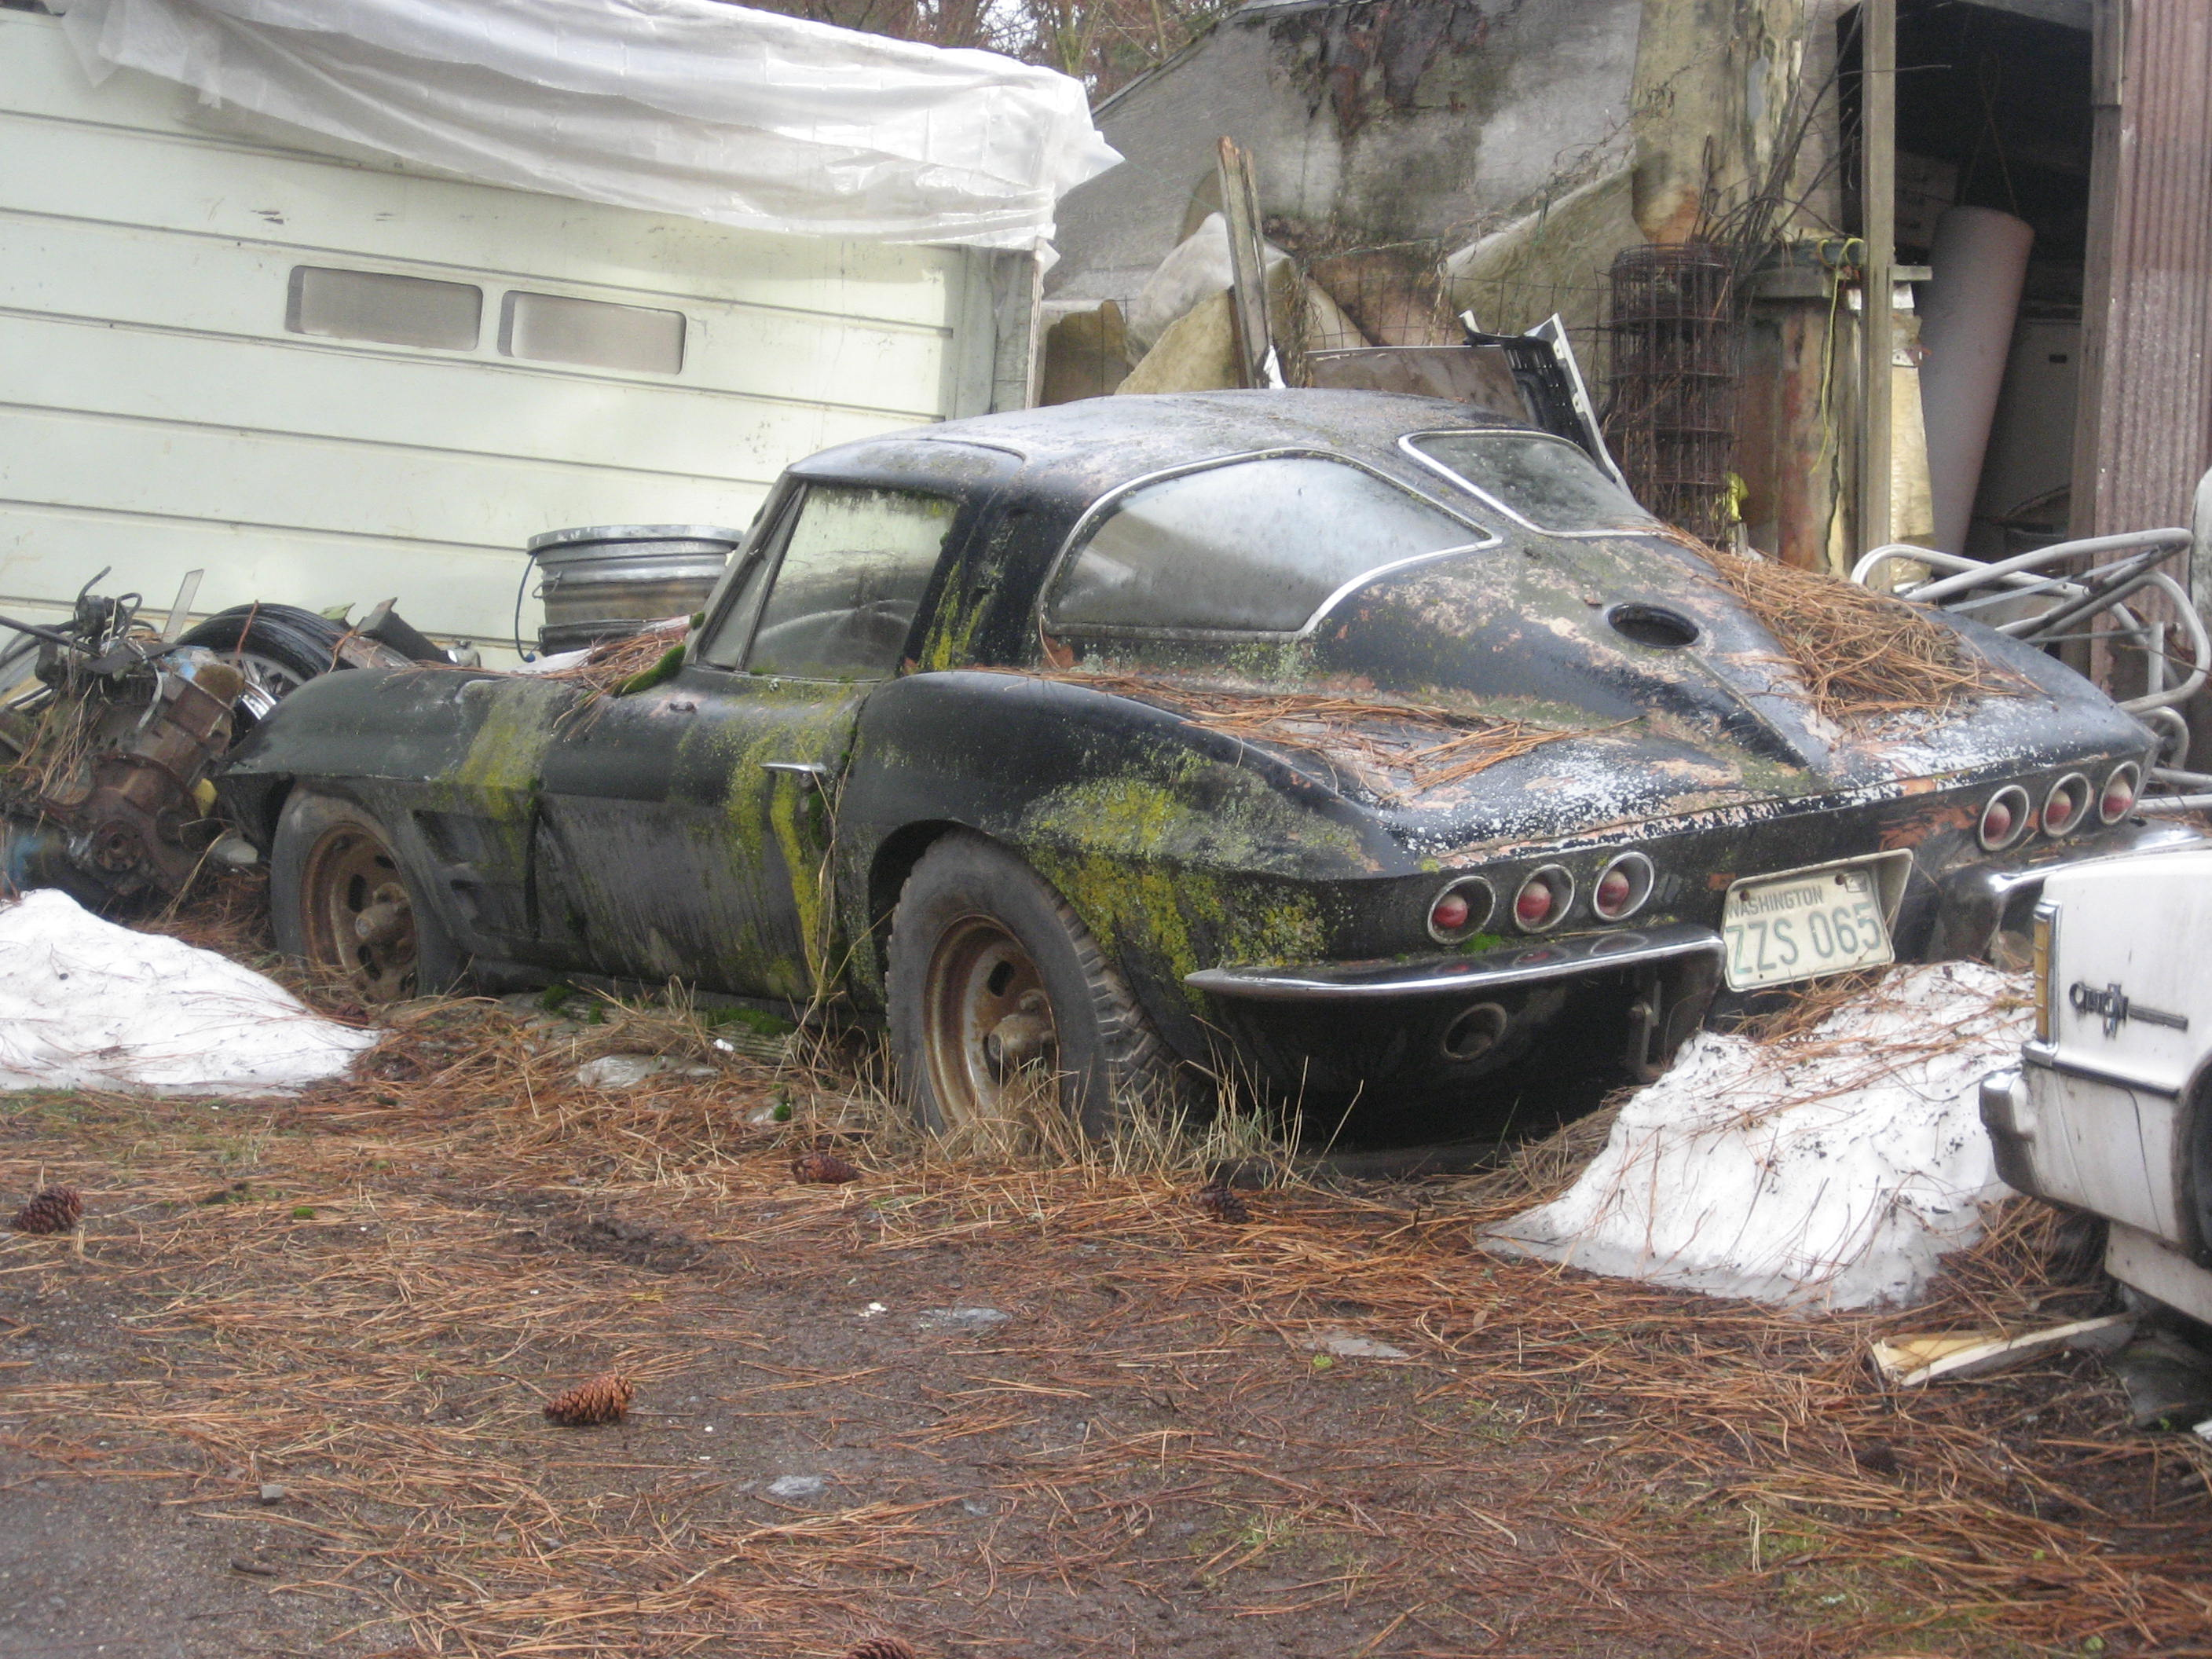 Let's Visit Some Abandoned Barns! Beautiful Barn Find IMO